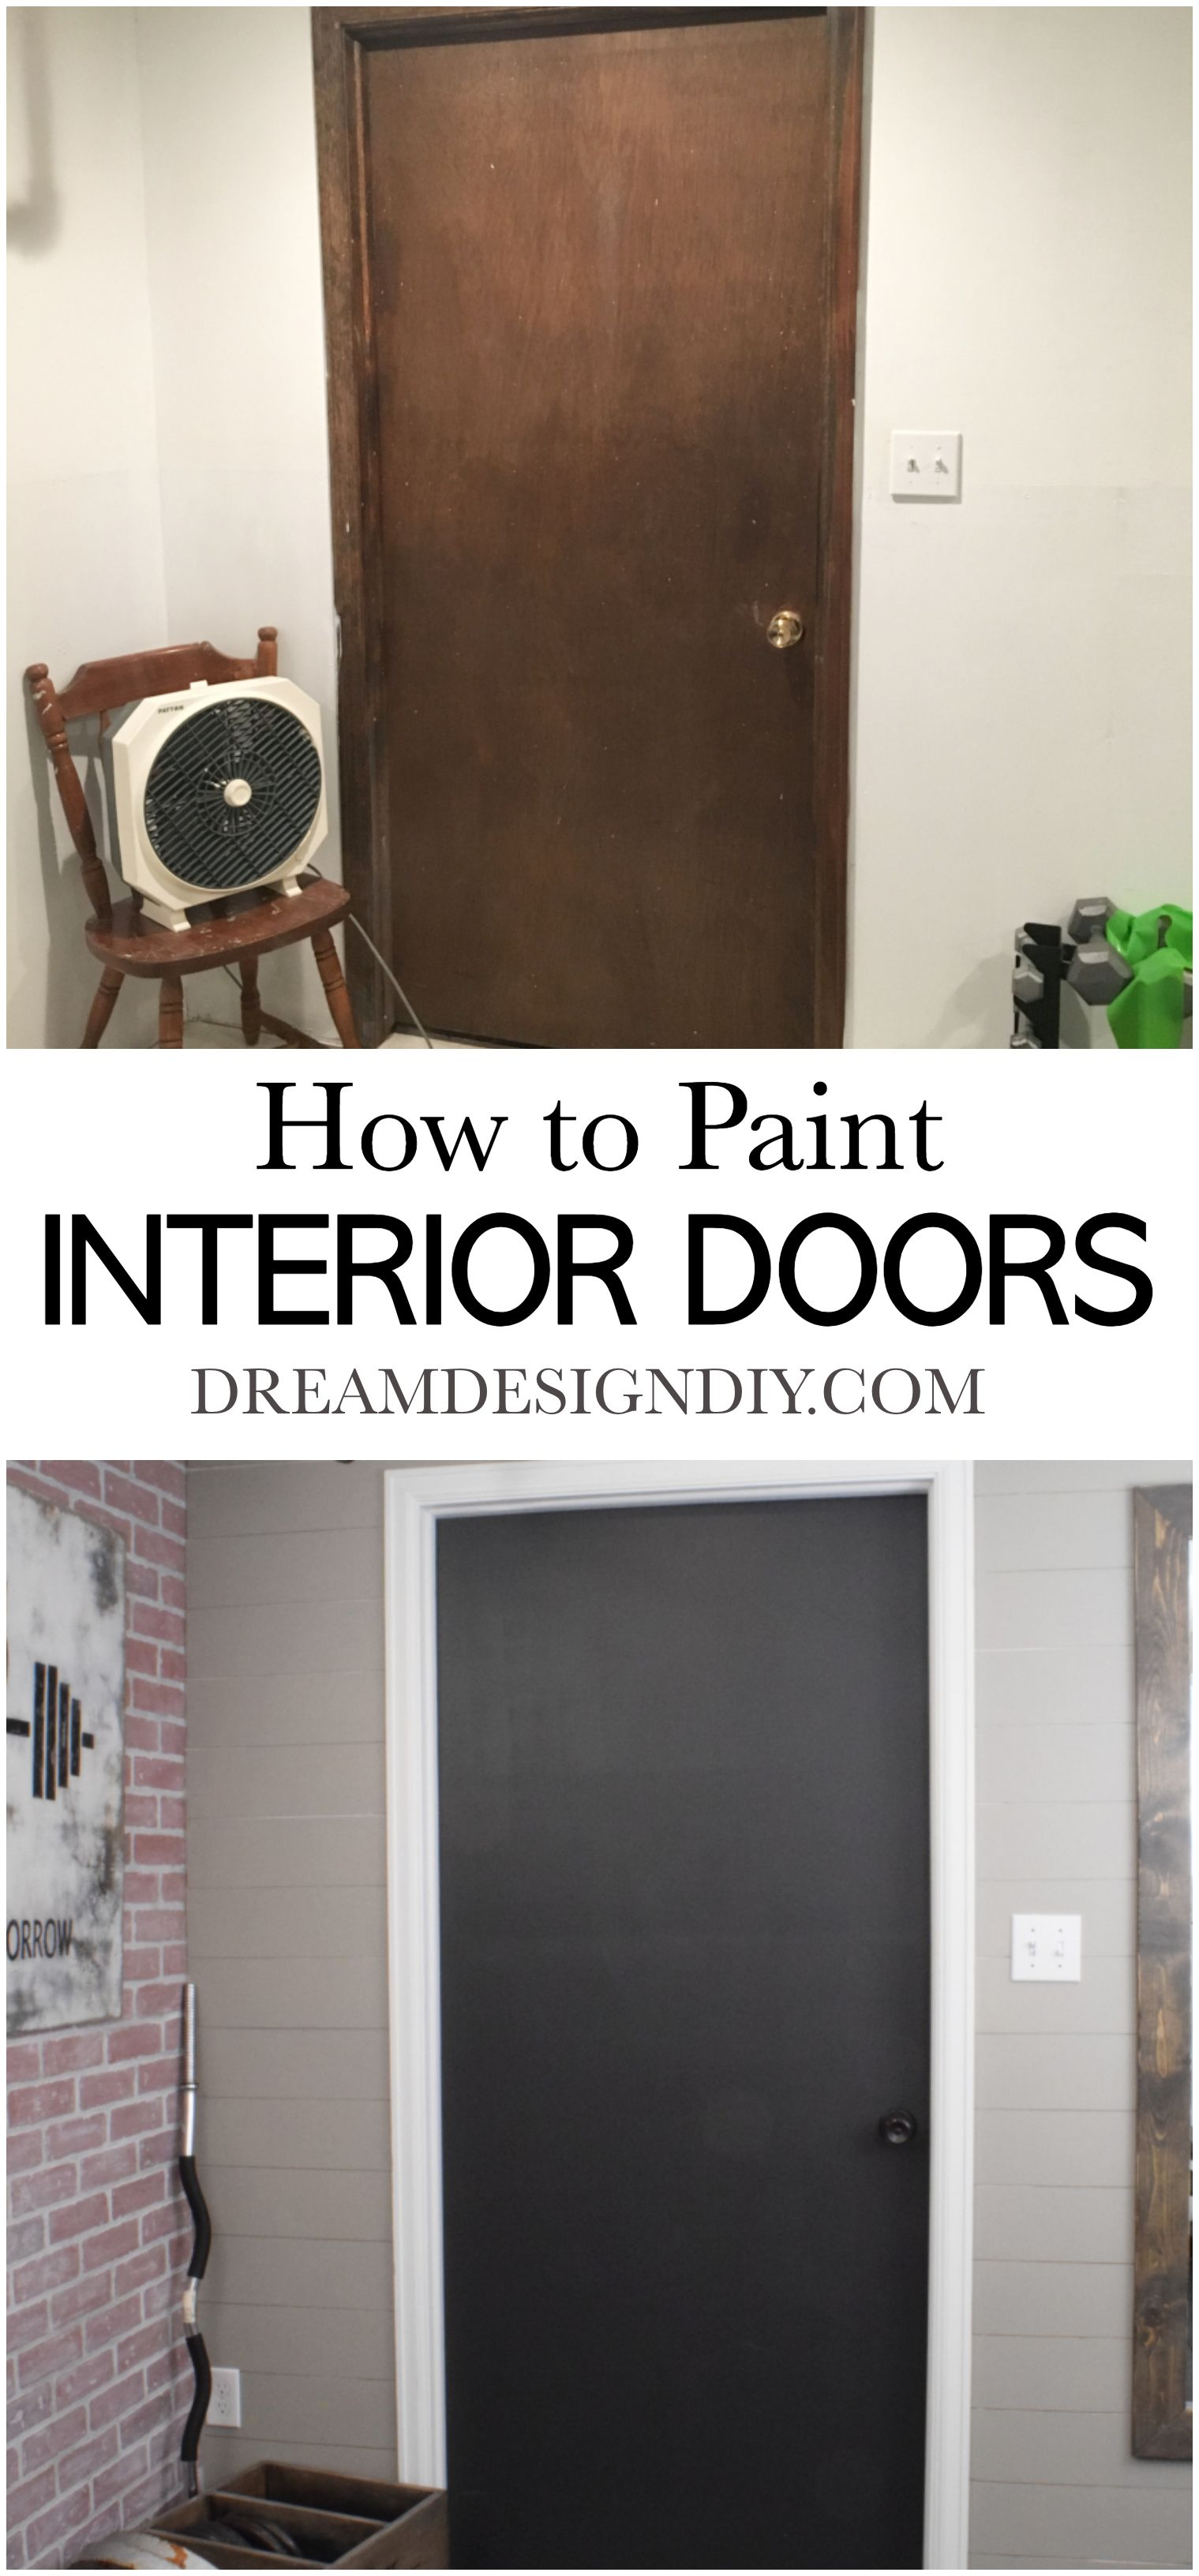 How To Paint Interior Doors Step By Step Tutorial Painted Interior Doors Doors Interior Interior Paint